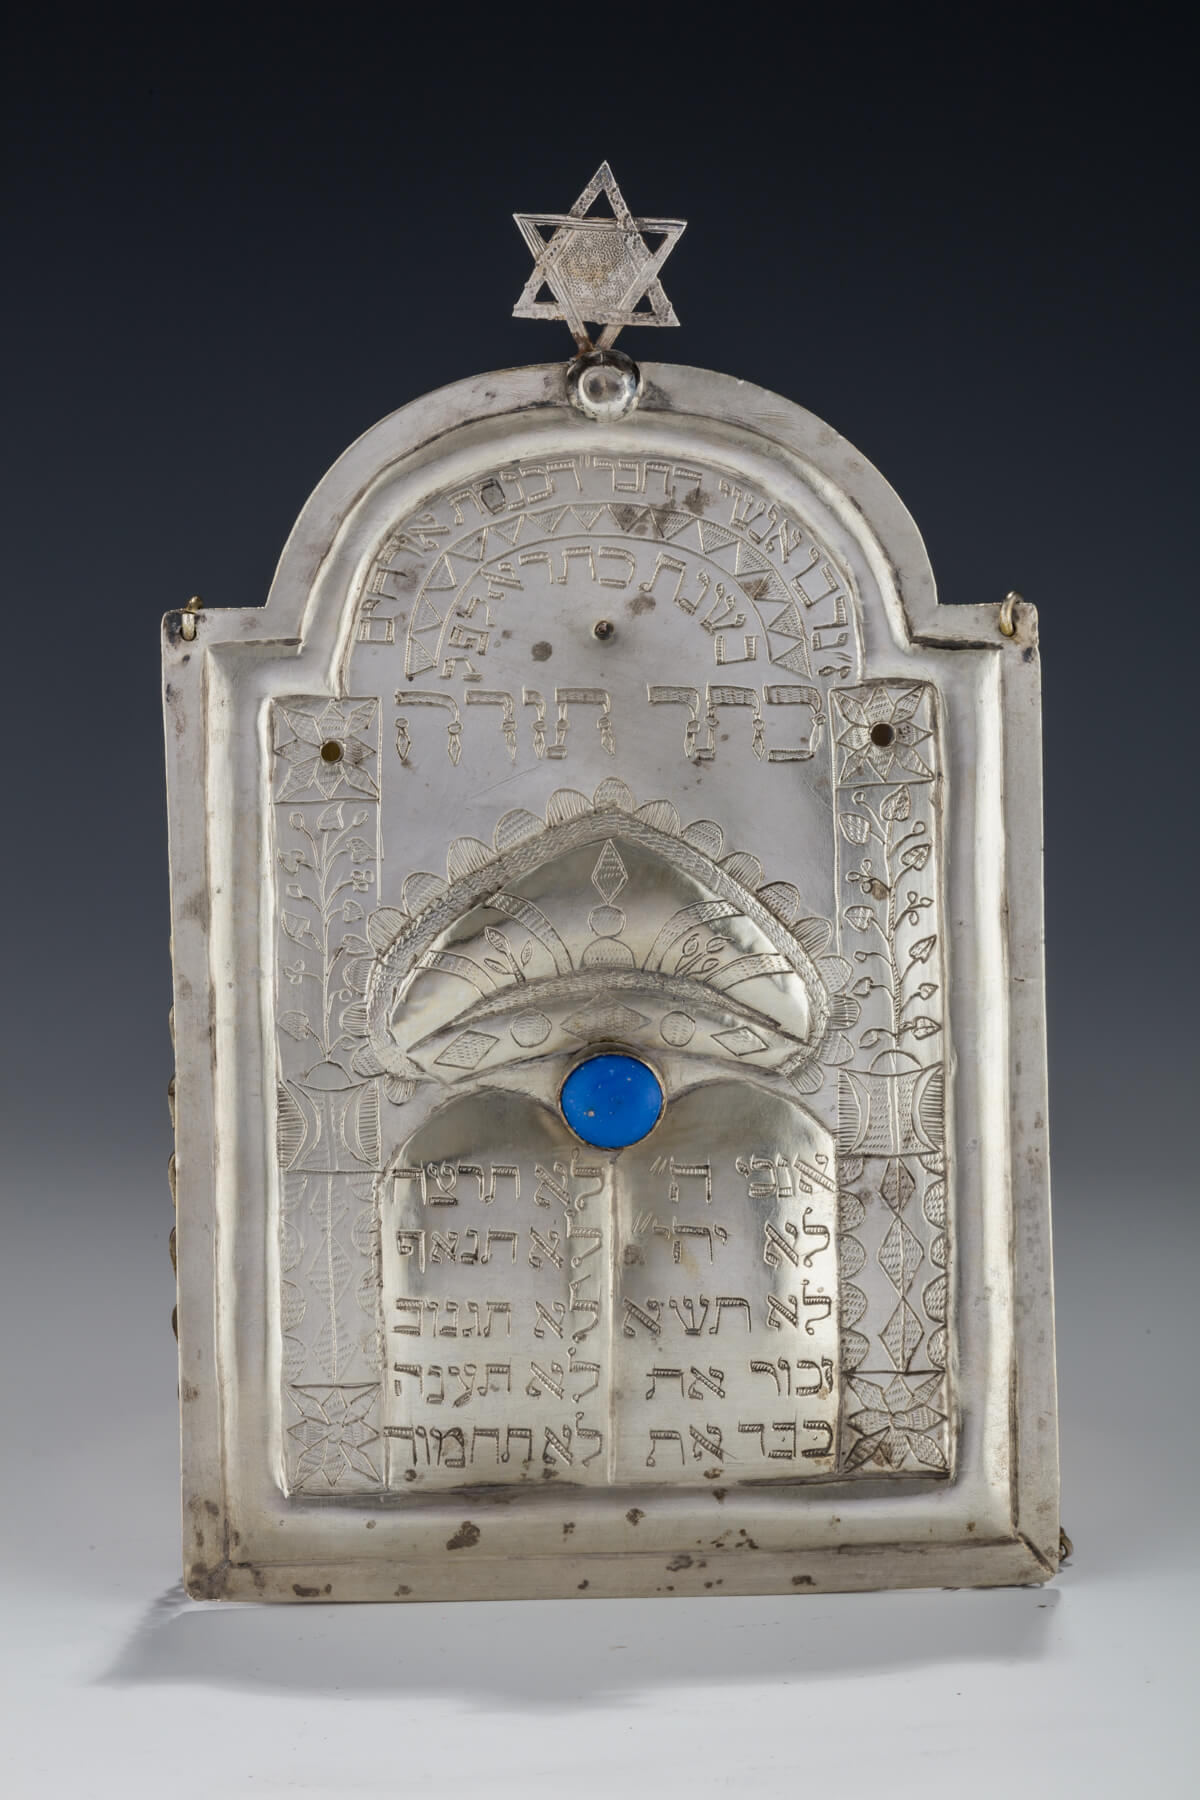 089. A Rare and Important Silver Torah Shield